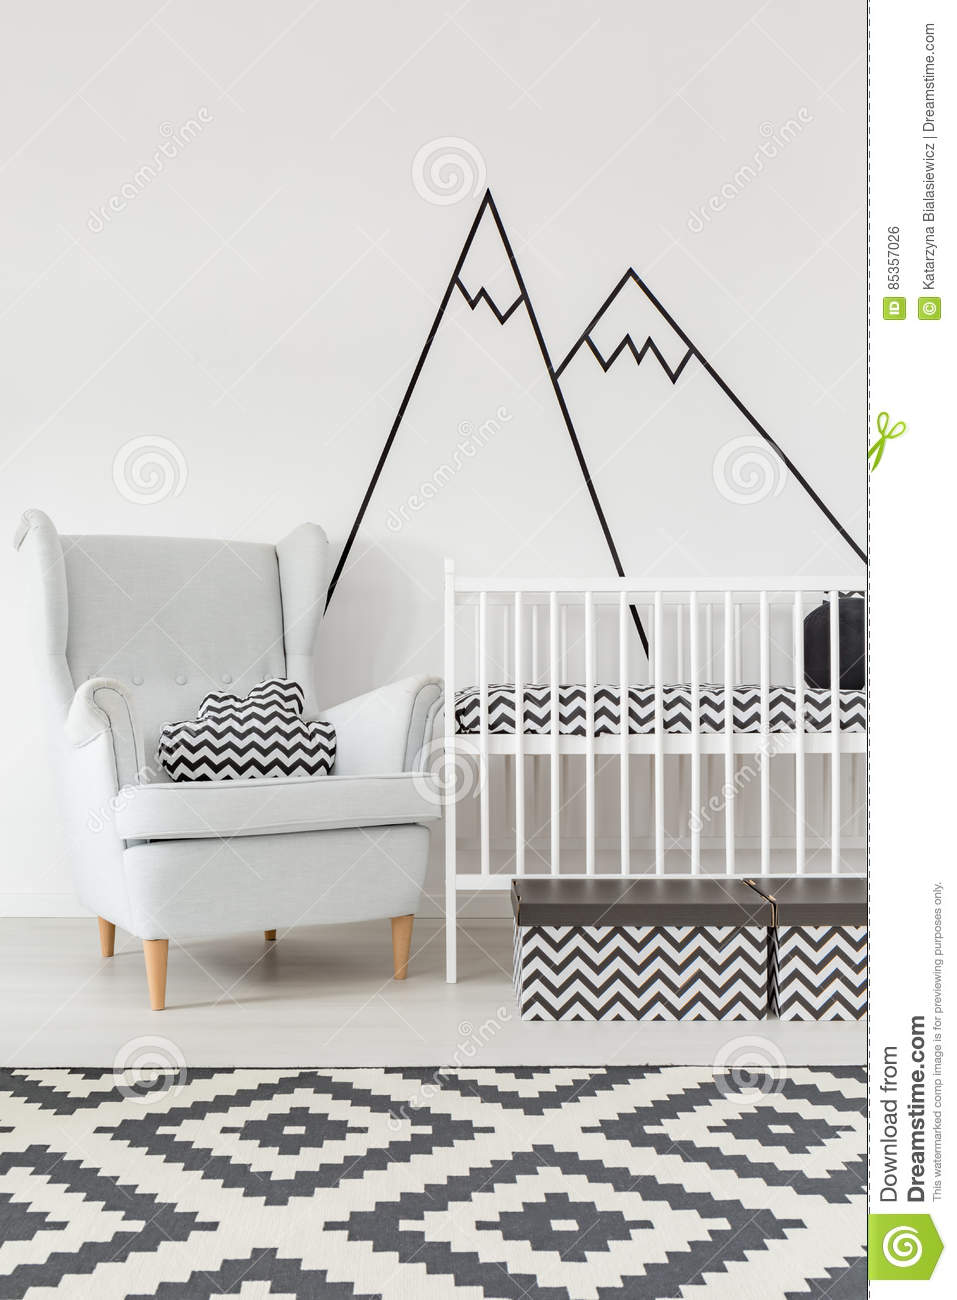 Room With Cot And Armchair Stock Photo Cartoondealer Com